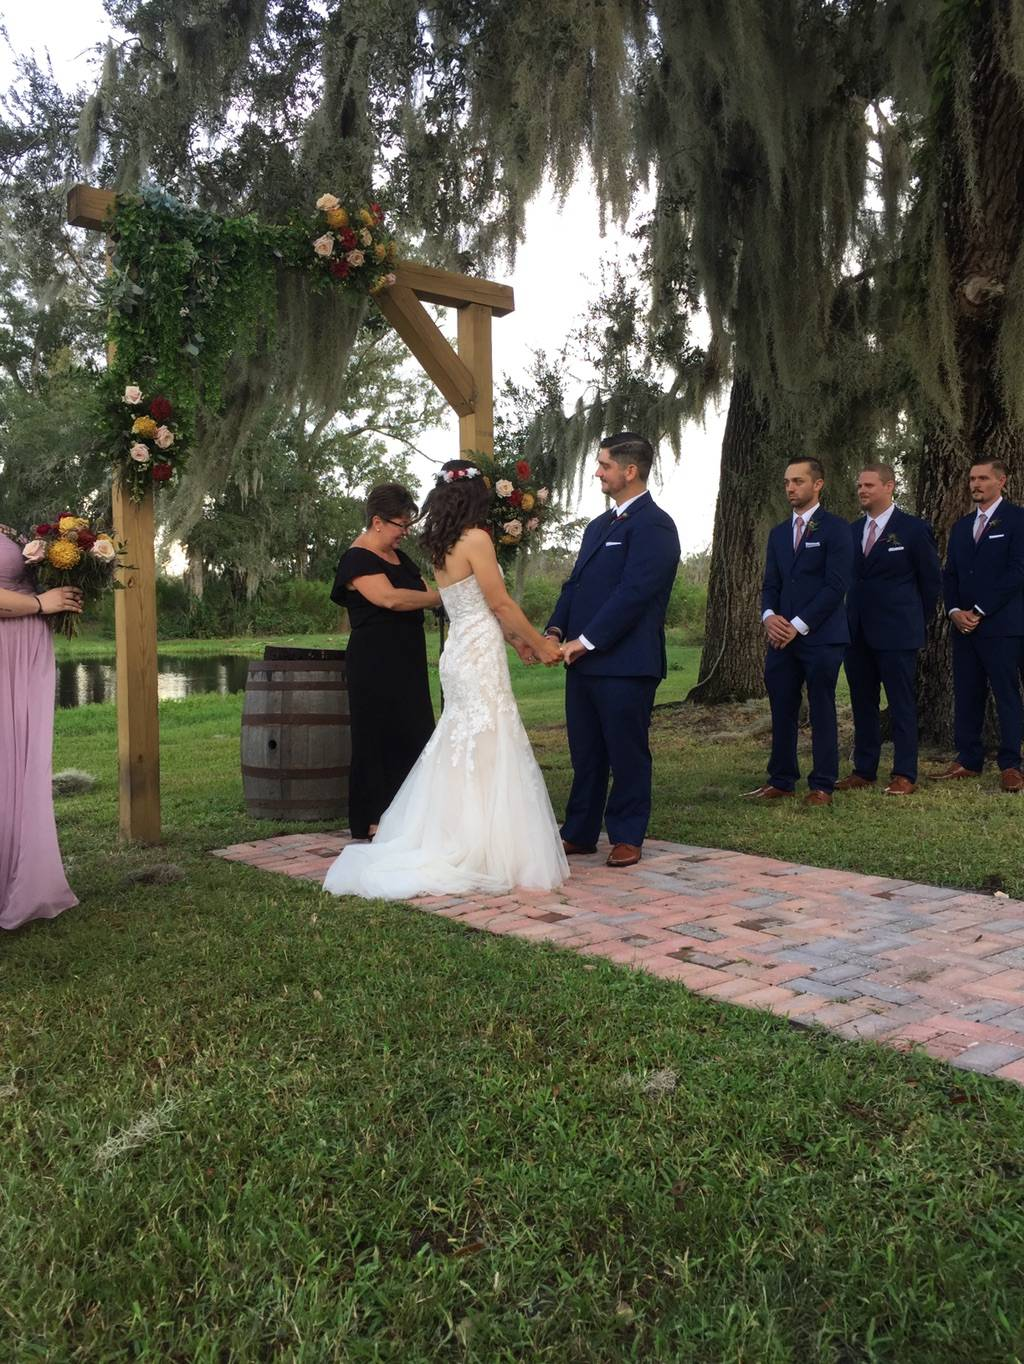 Mr. and Mrs. Dylan Lyons